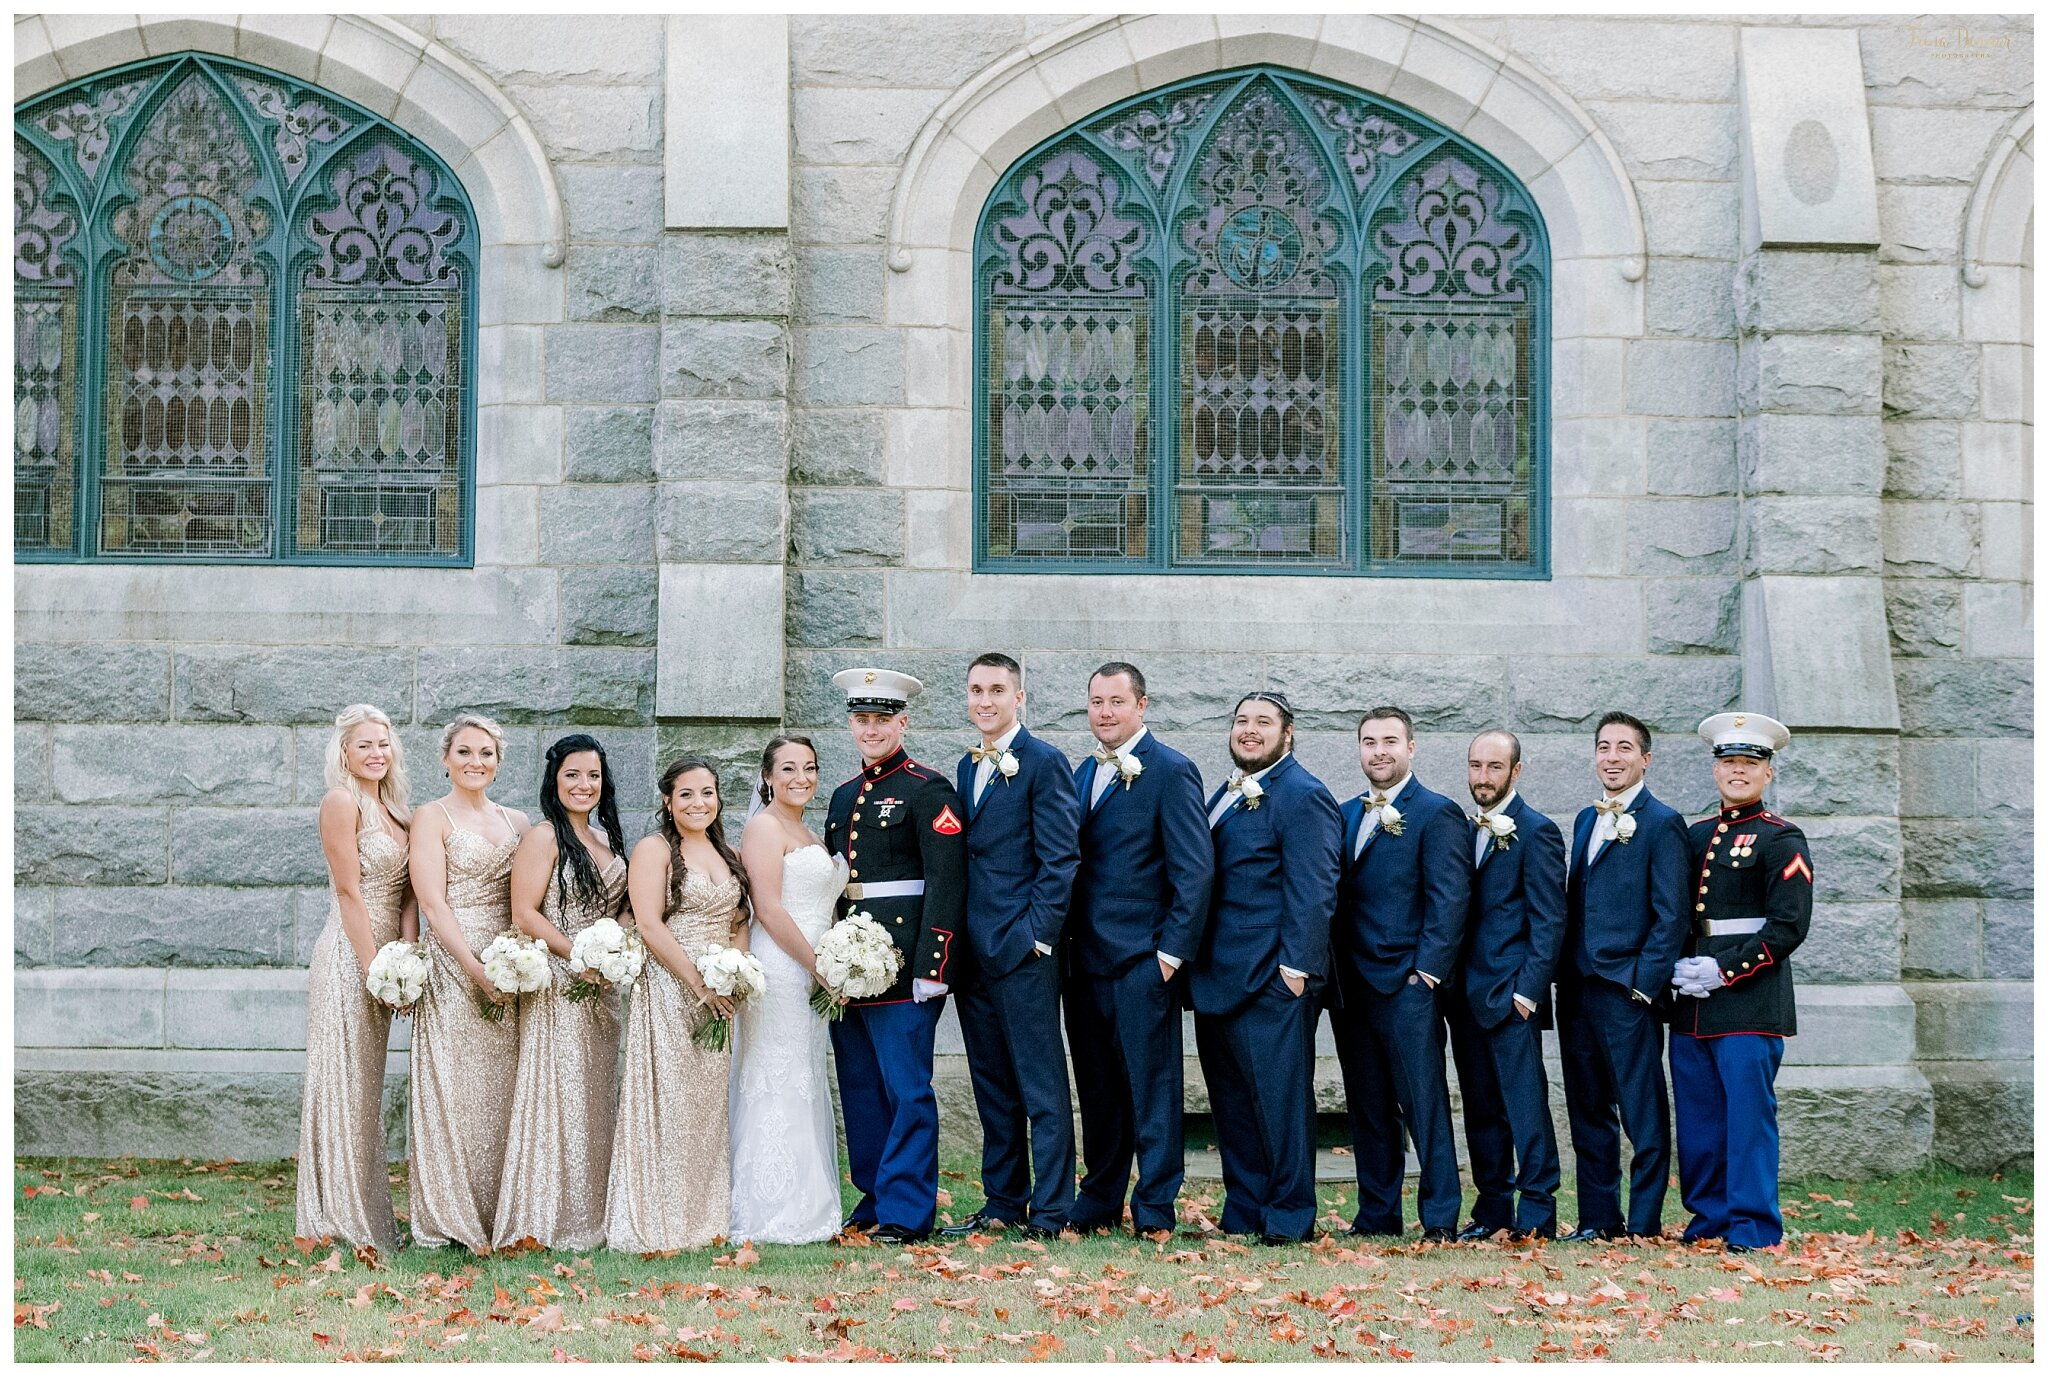 Gold and Navy Marine Wedding Party